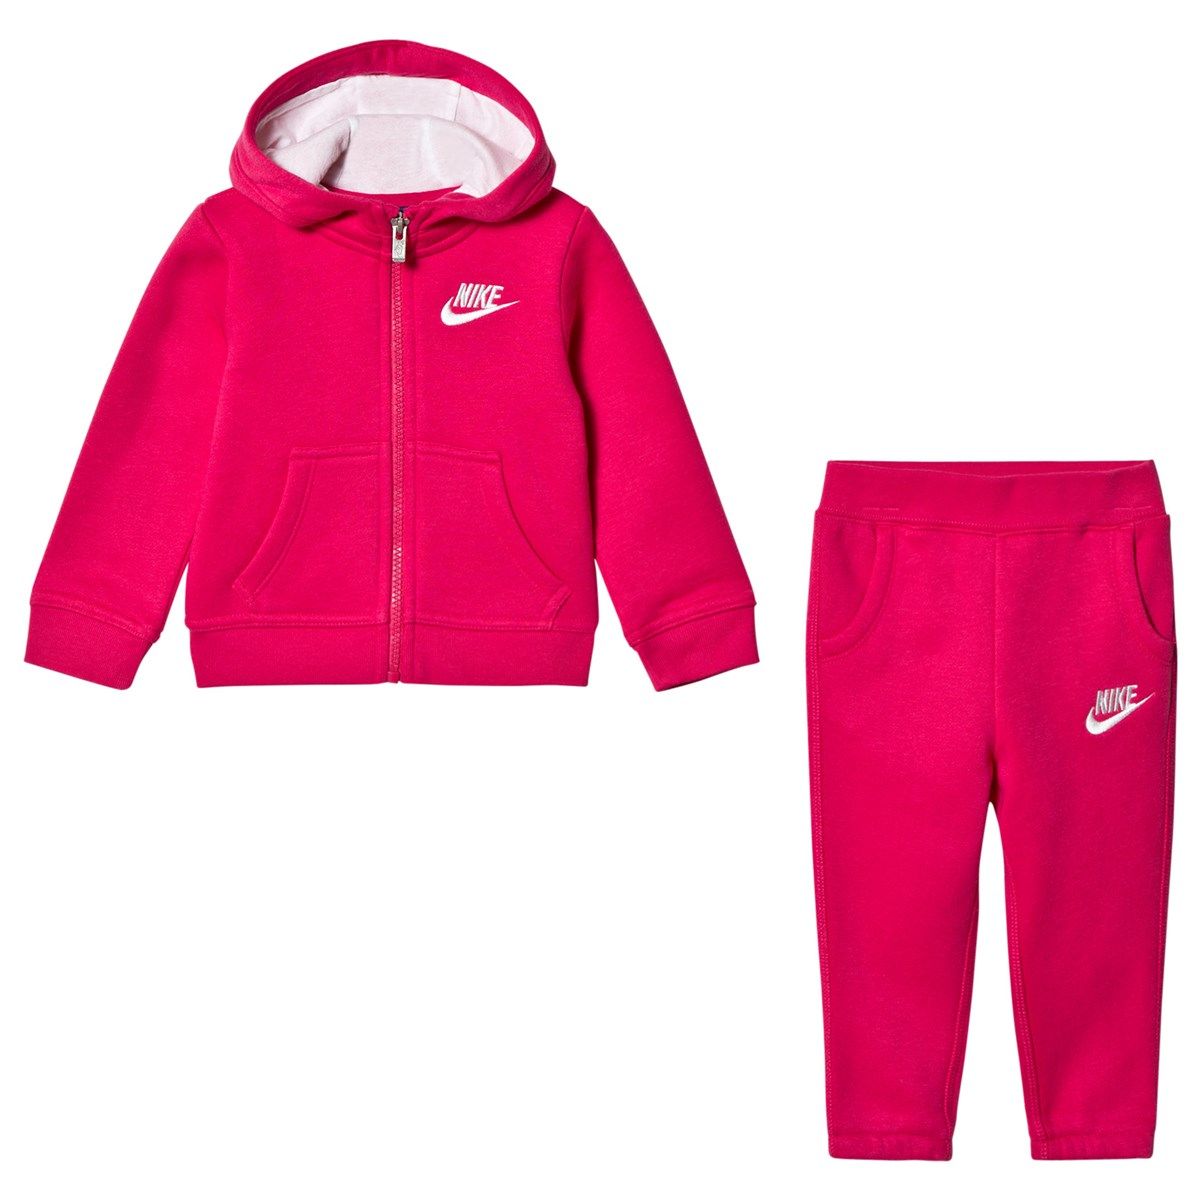 1c561504117a Nike Pink Club Fleece Hoodie and Sweatpants Set